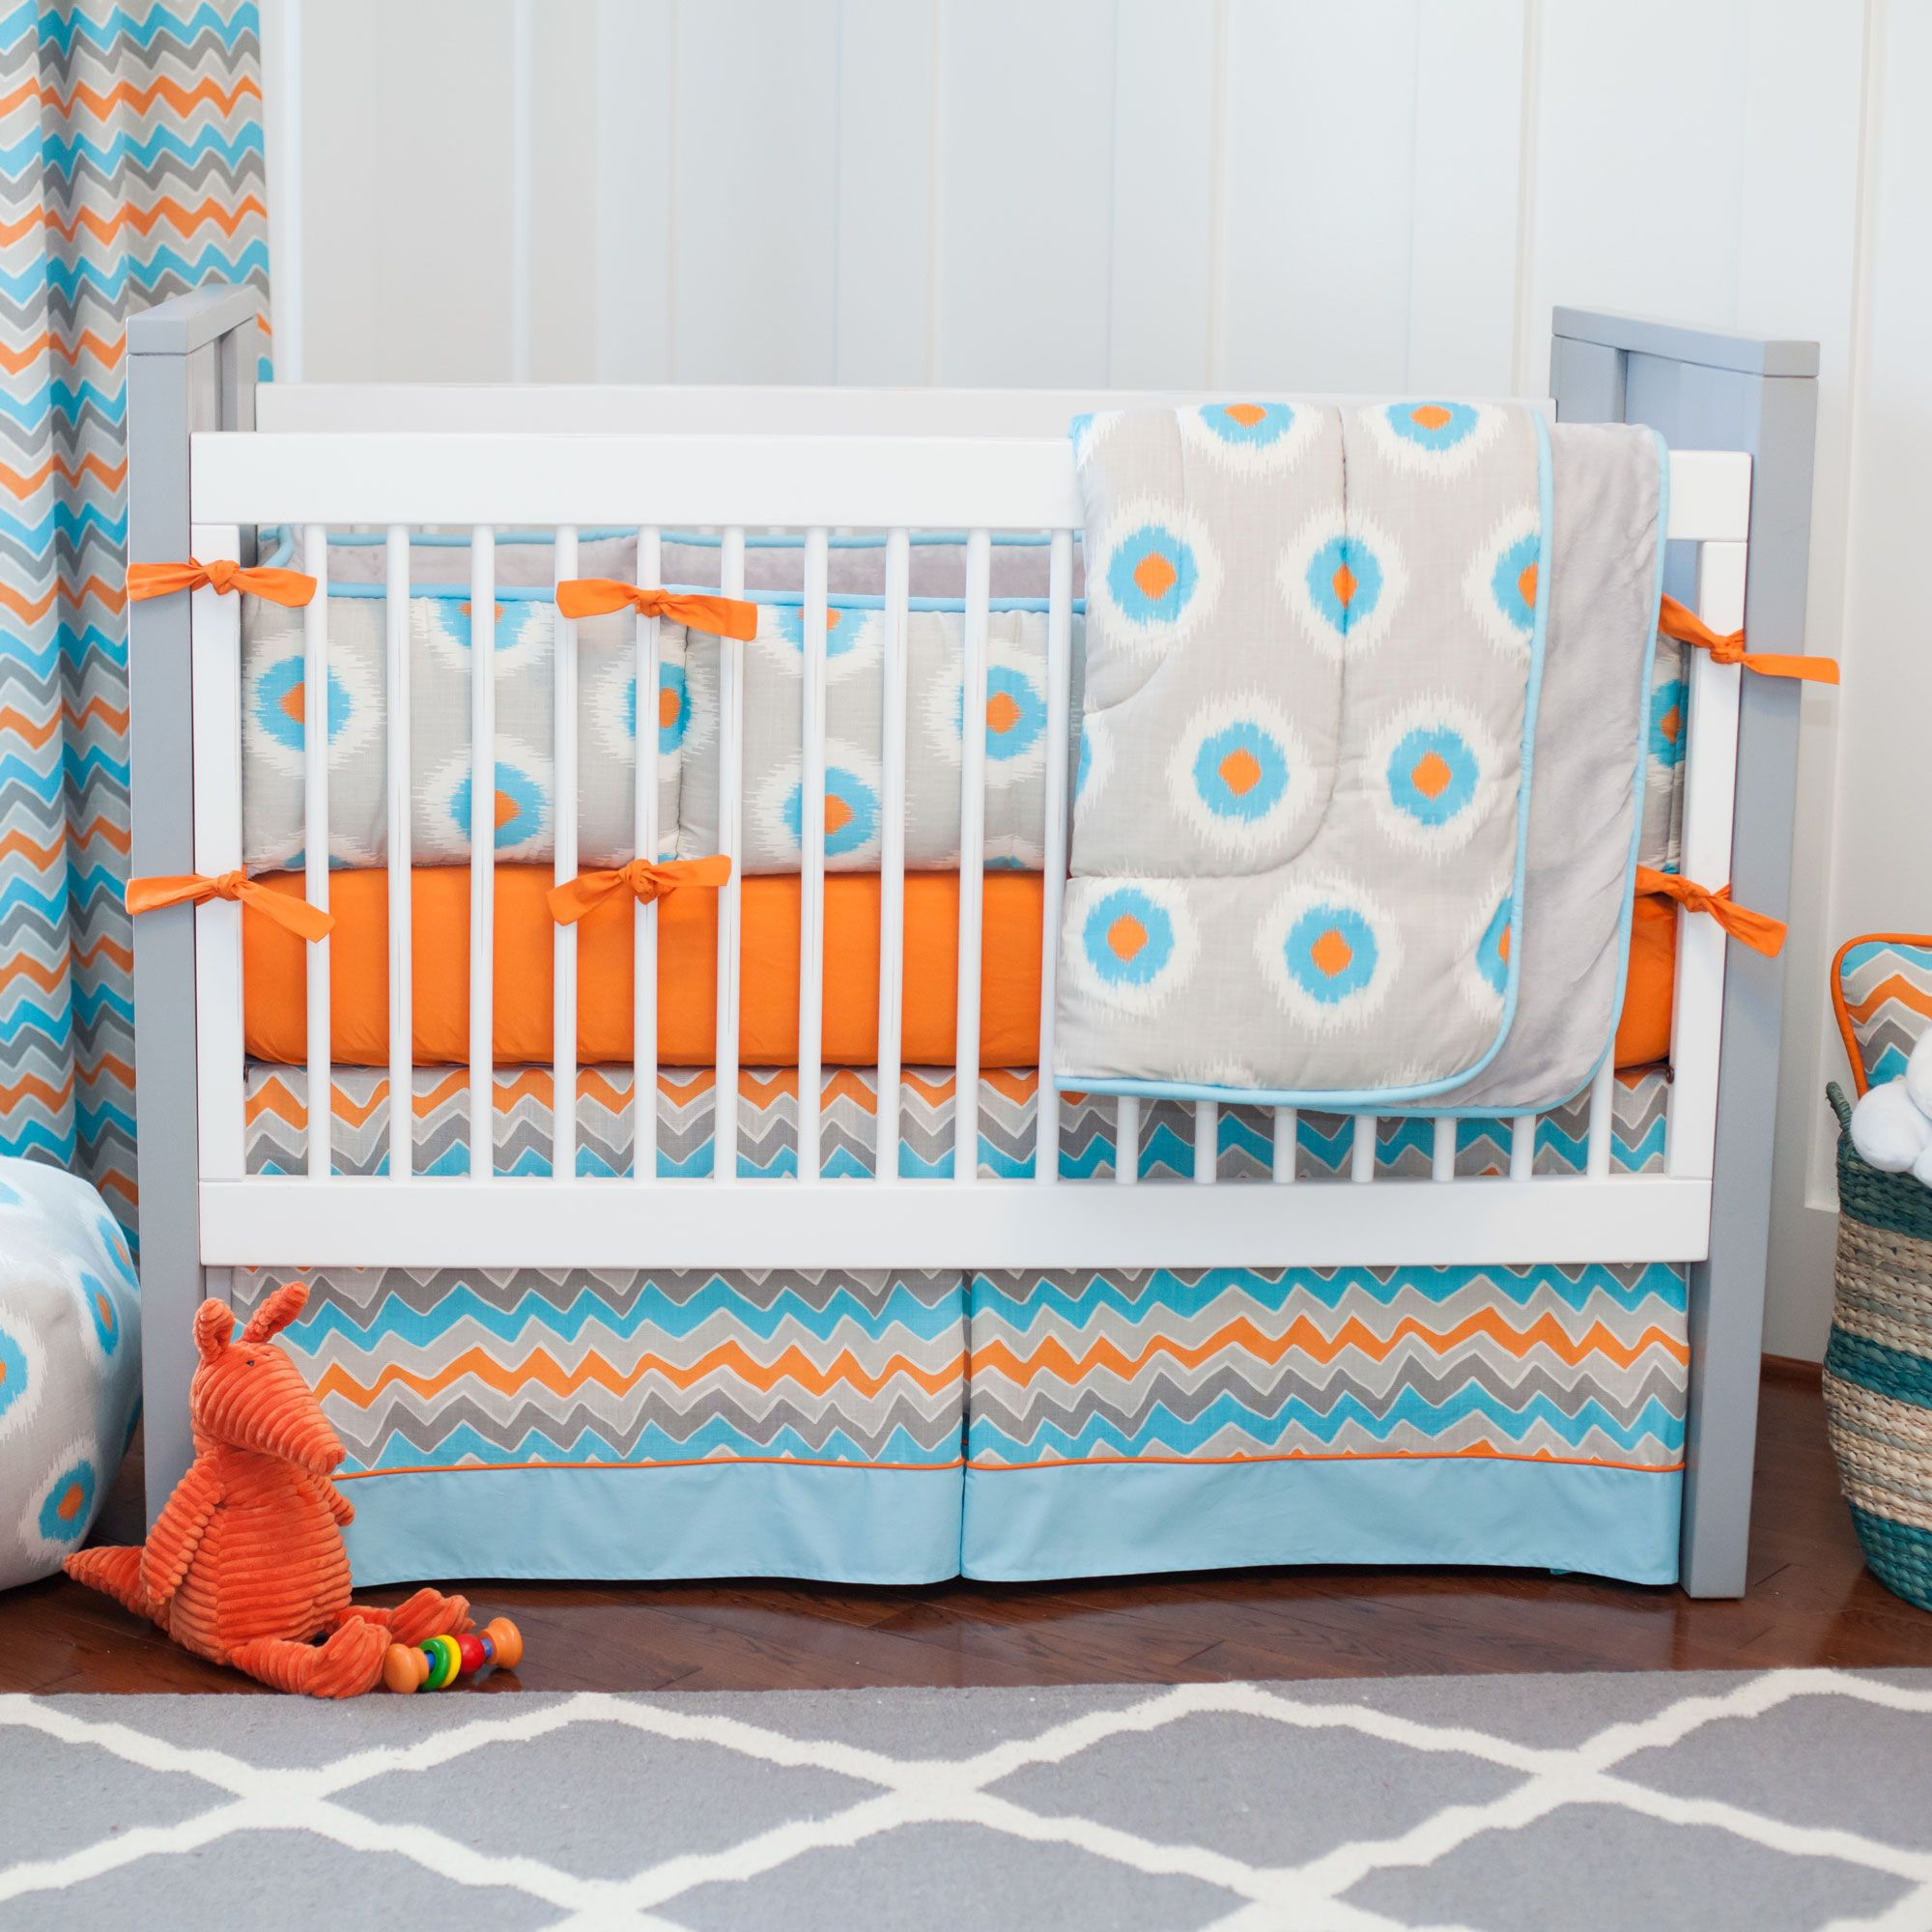 Chic Gray And Orange Ikat Bedding Dotted Baby Crib Set With Blue